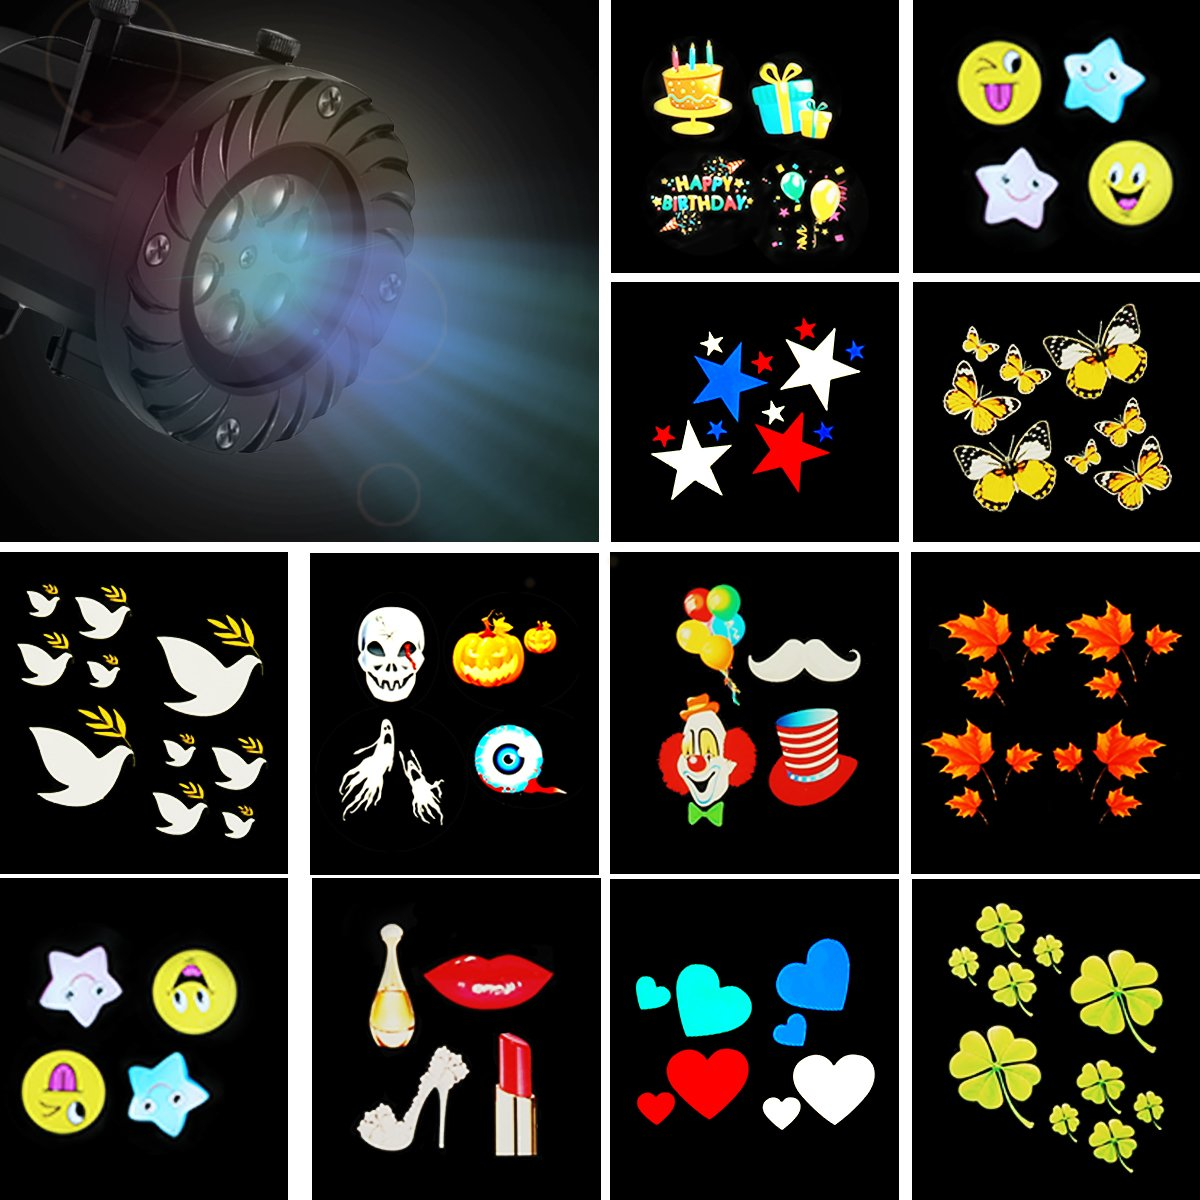 Christmas Projector Lights, JELEGANT LED Landscape Lights Projector Spotlights with Remote Control Waterproof Decoration Lighting with 12pcs Switchable Pattern Show for Halloween Holiday Party by JELEGANT (Image #4)